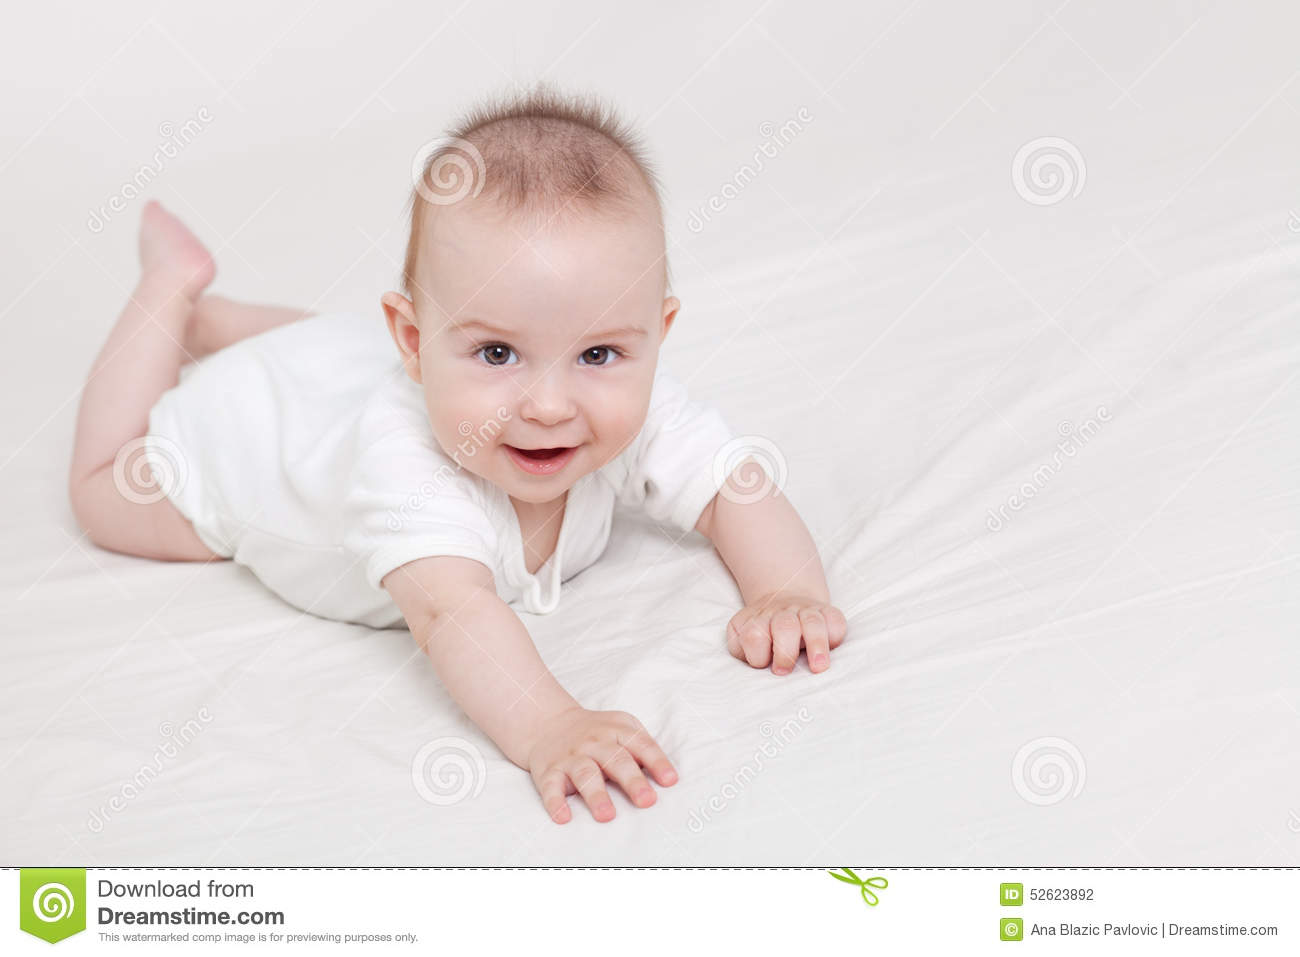 Cute Baby Crawling Stock Photo Image Of Caucasian Crawl 52623892